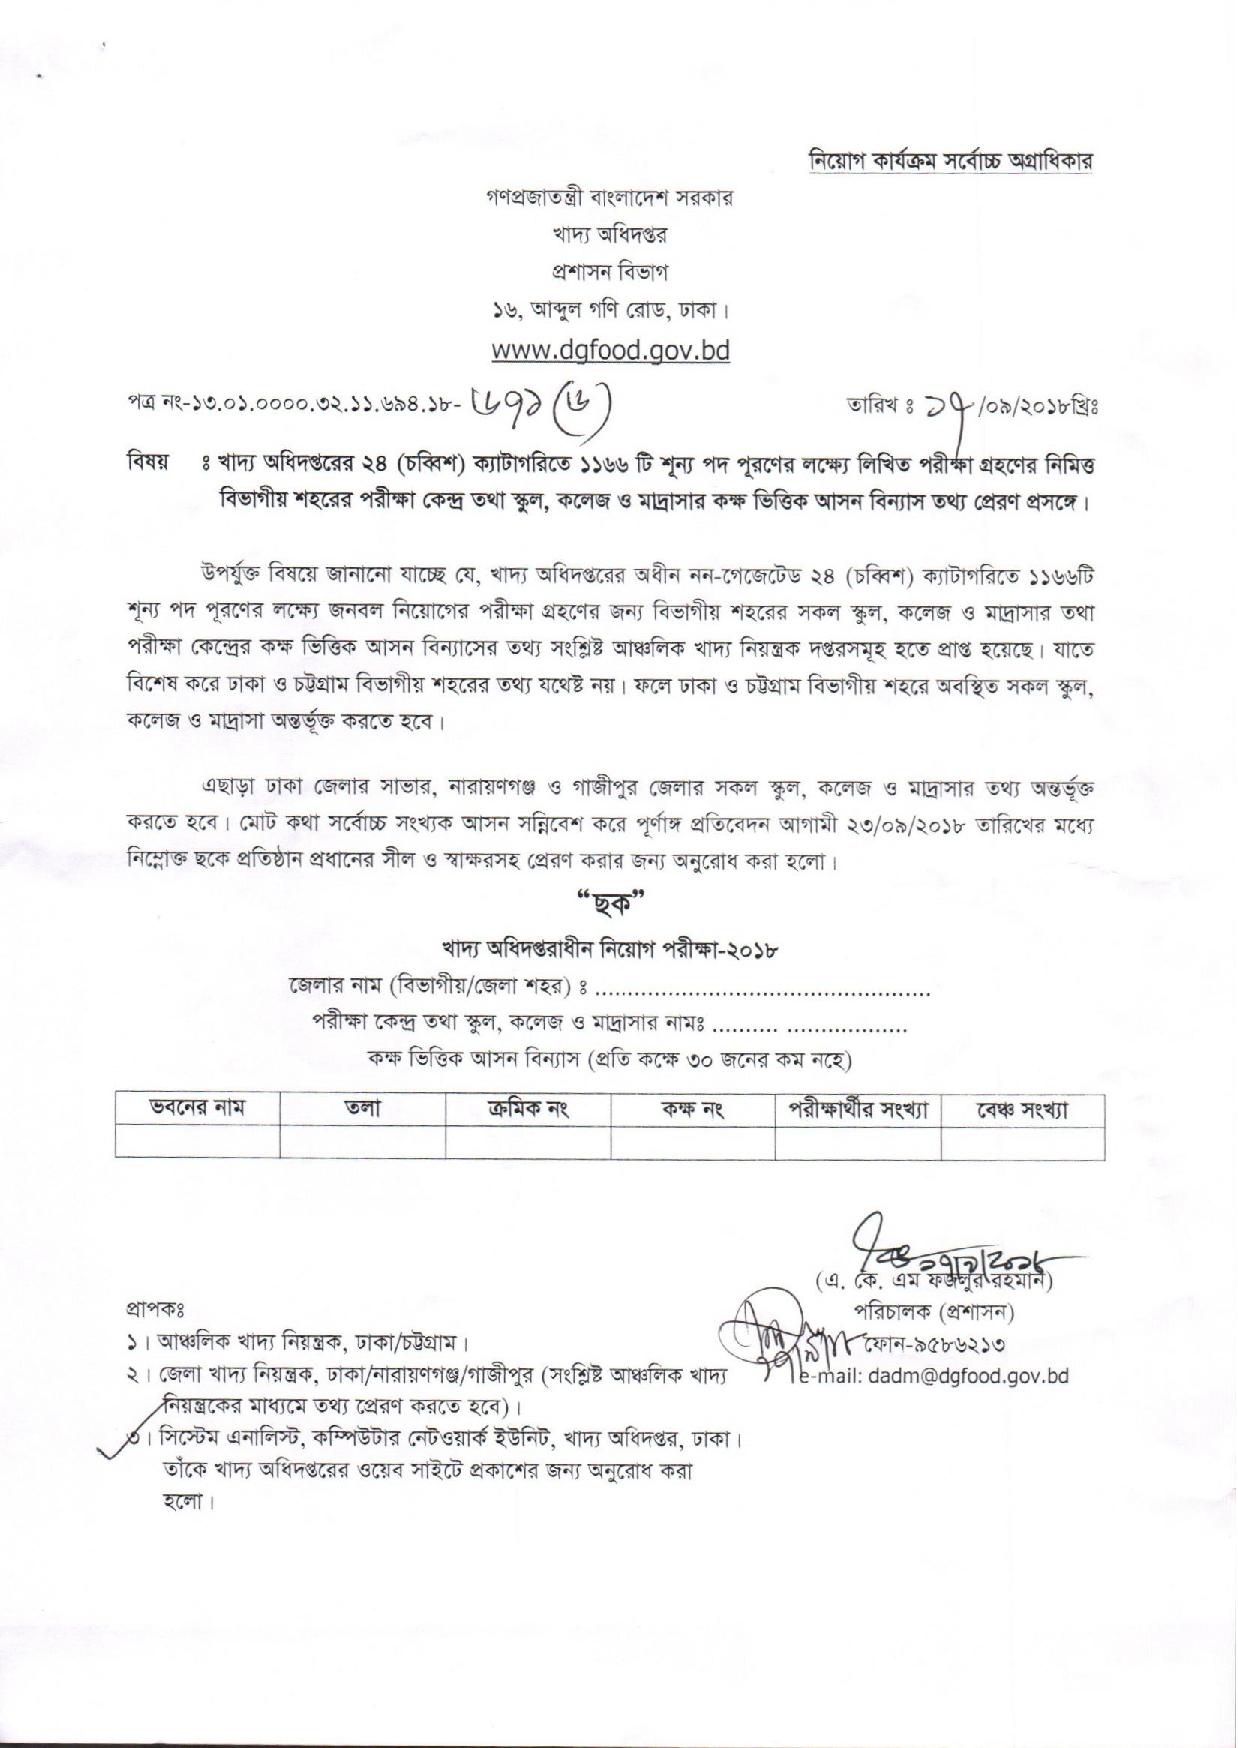 Directorate General of Food (Dgfood) Exam Related Official Notice Circular 2018